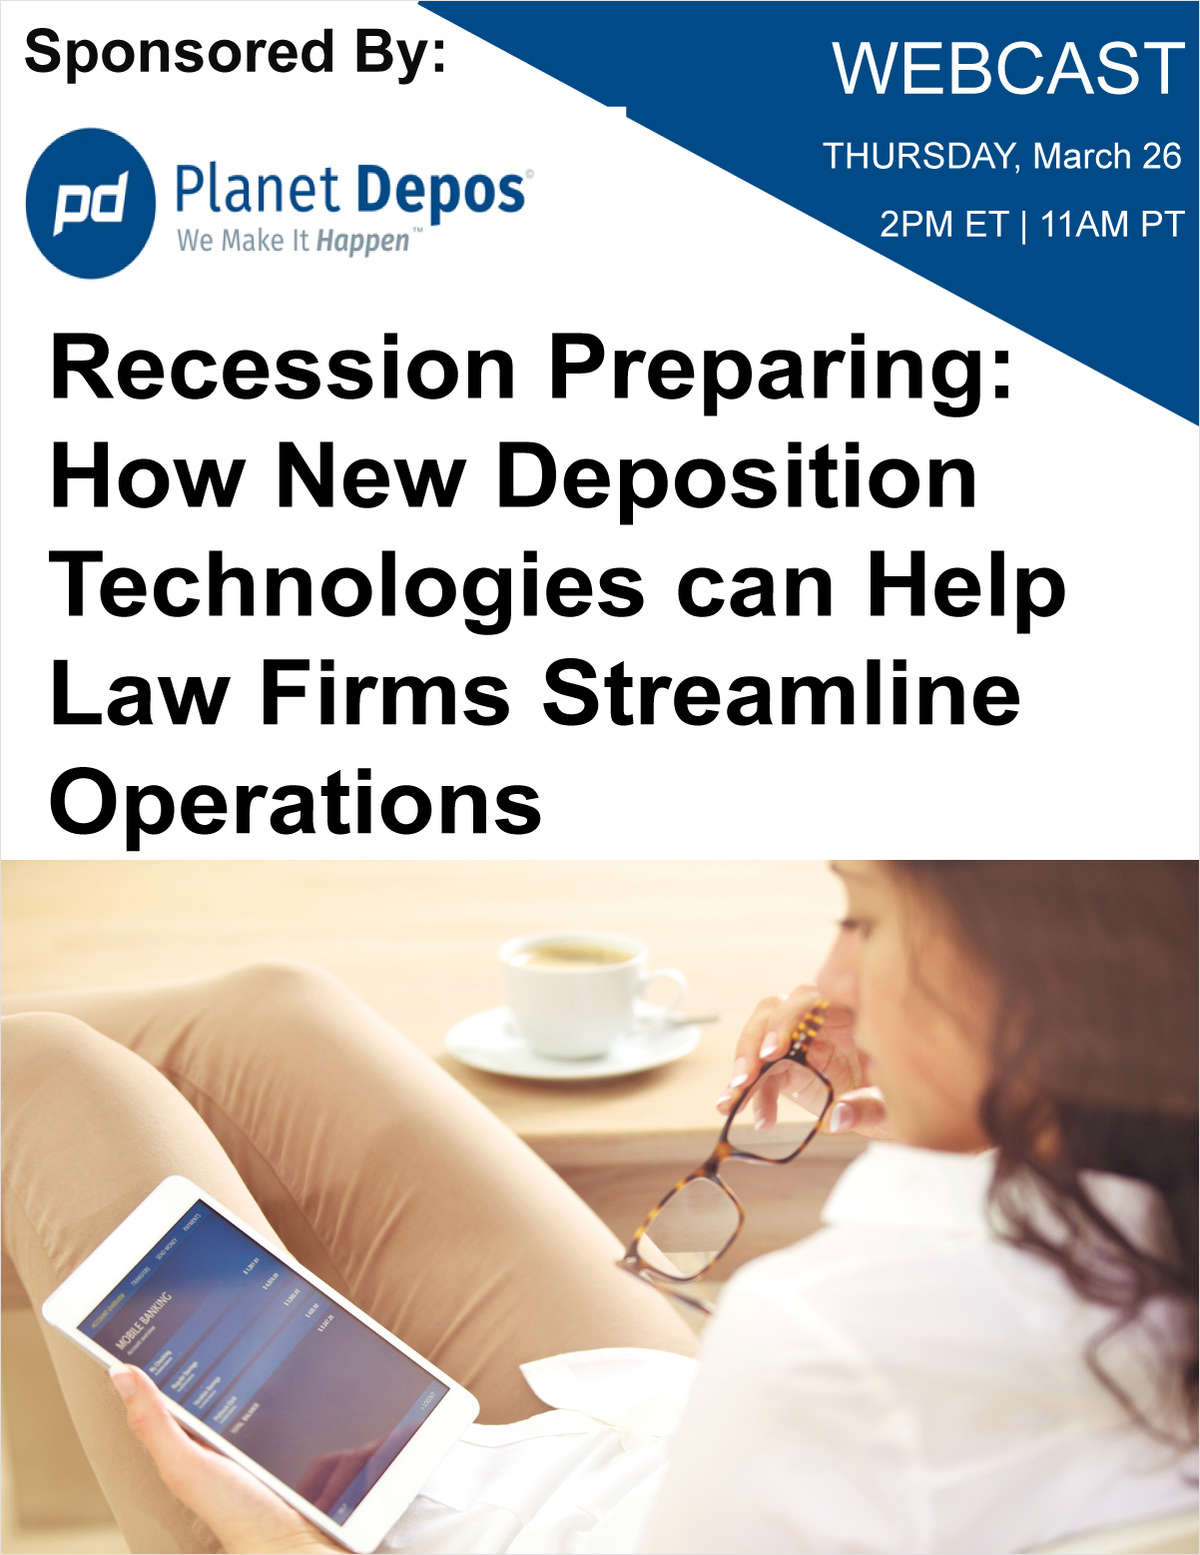 Recession Preparing: How New Deposition Technologies can Help Law Firms Streamline Operations